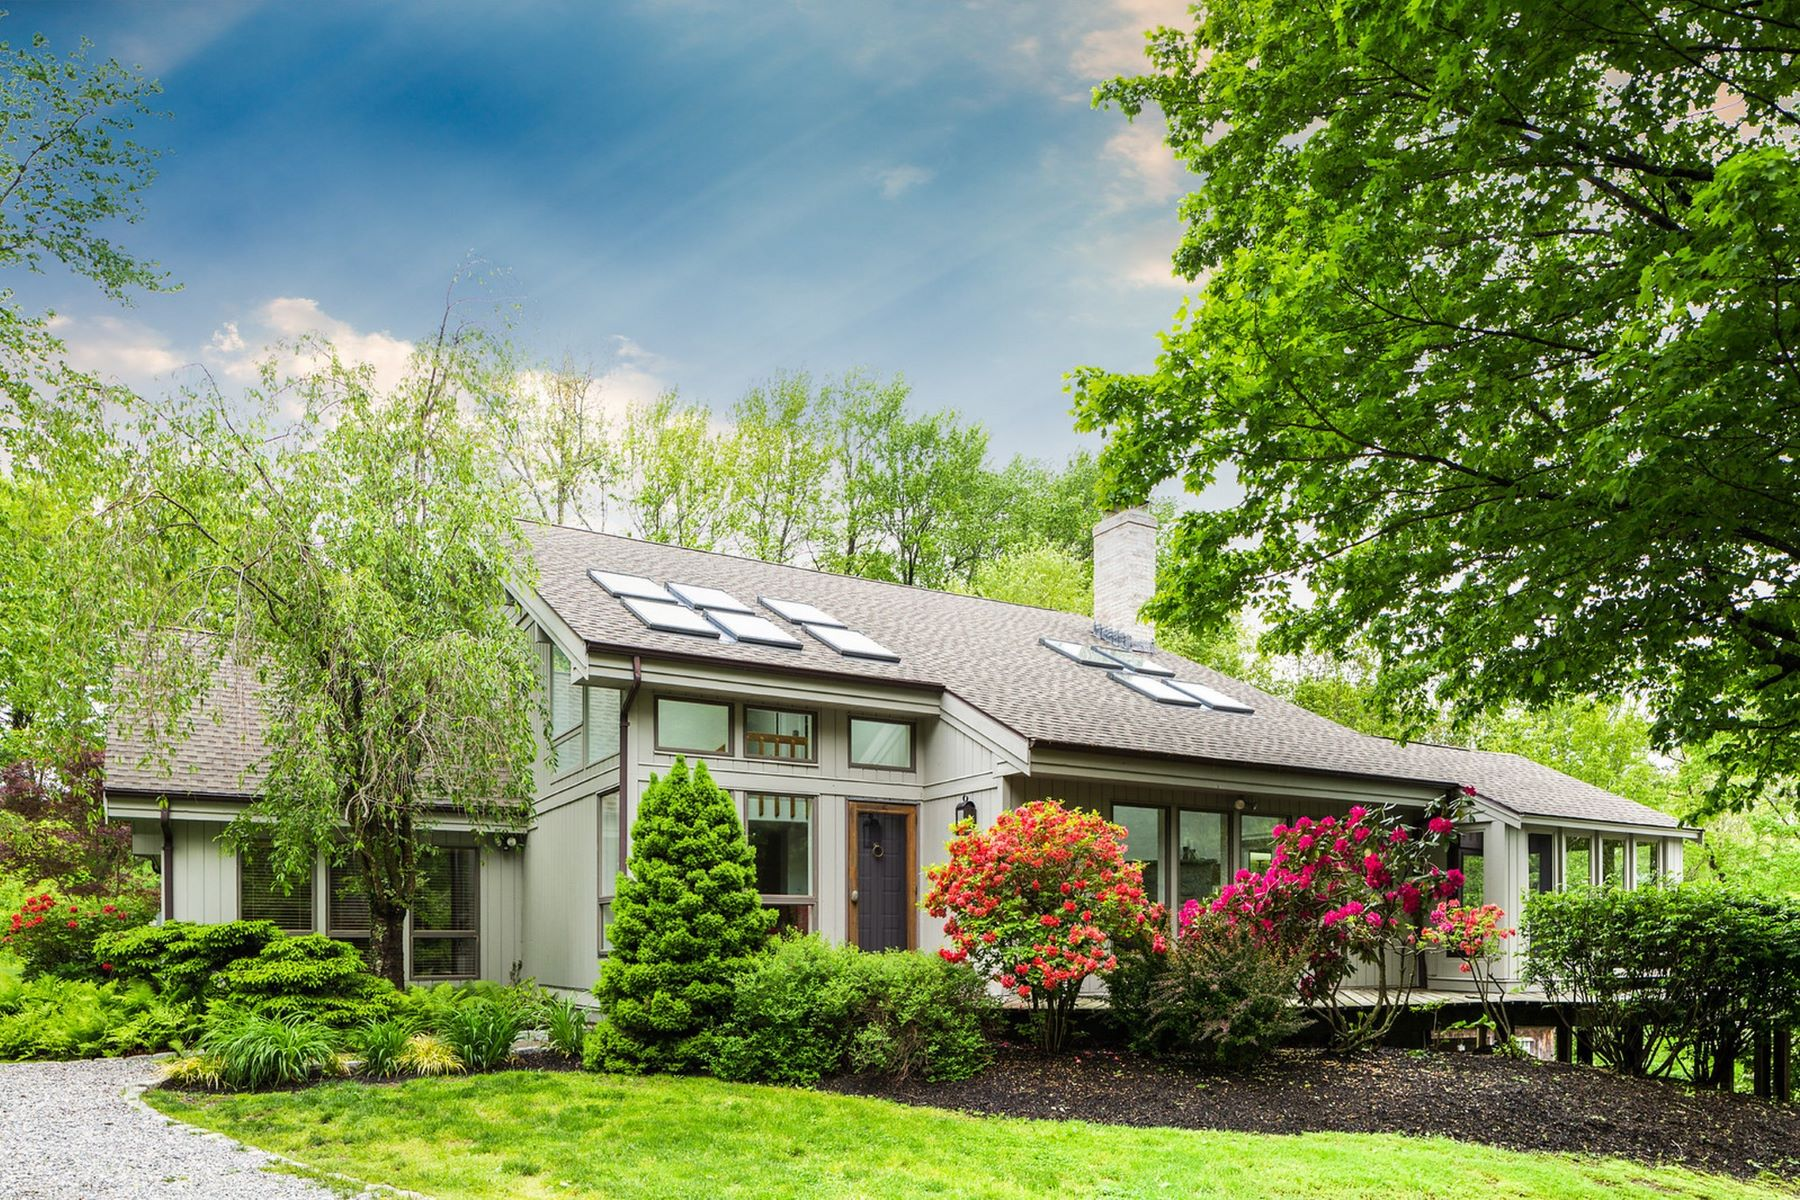 واحد منزل الأسرة للـ Sale في Updated, passive solar, contemporary 243 Chestnut Hill Road, Litchfield, Connecticut, 06759 United States